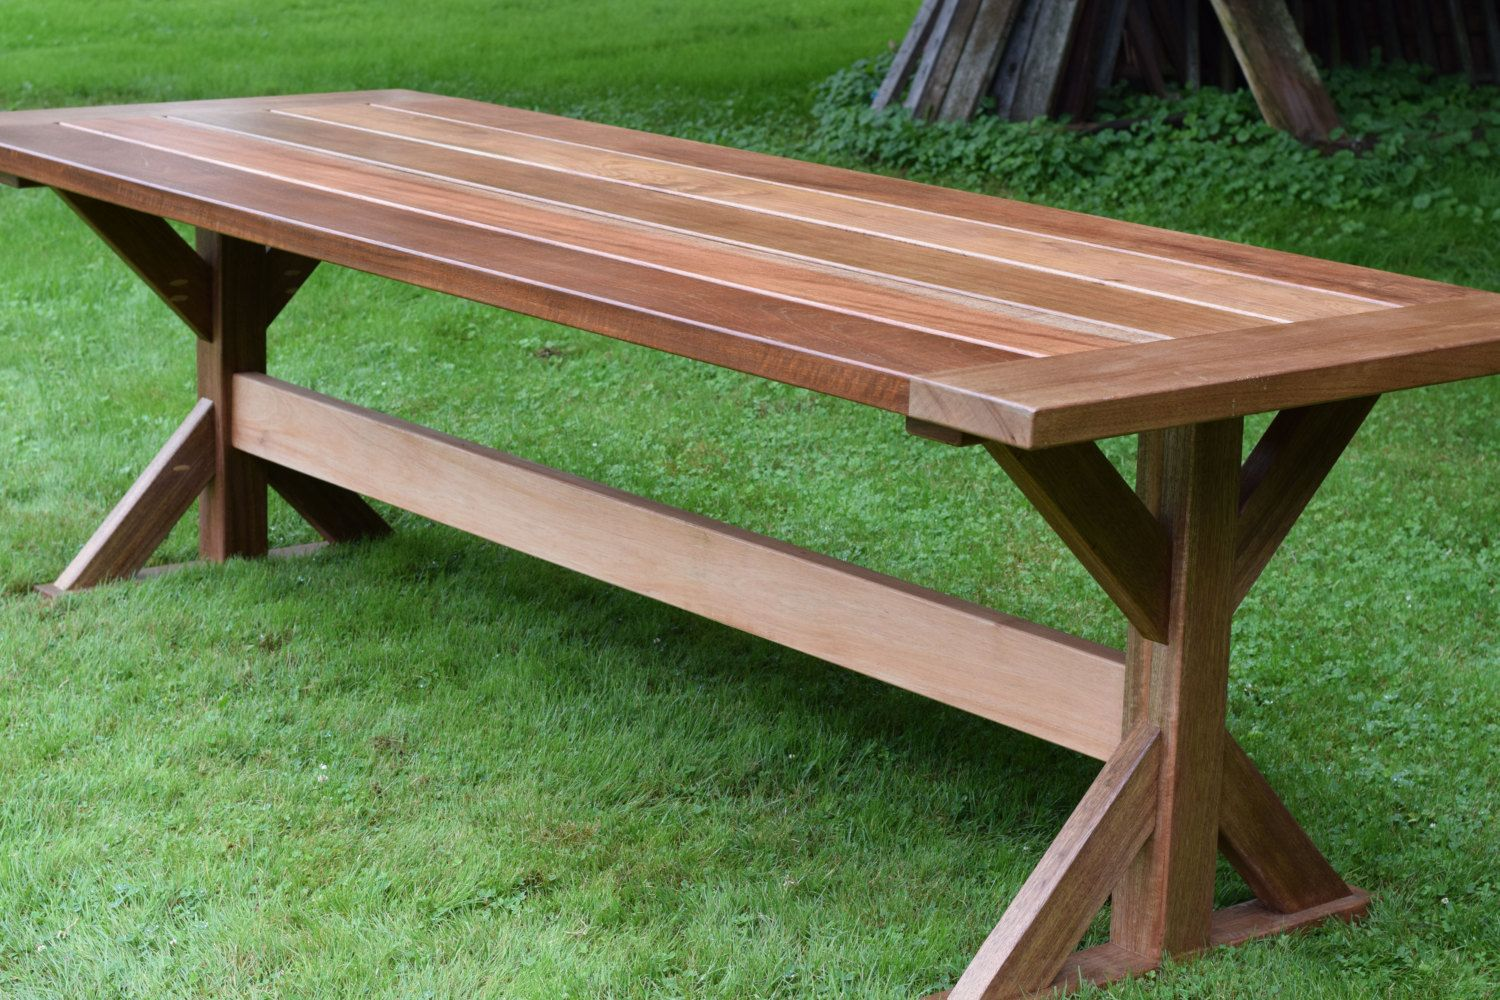 Popular Items For Outdoor Furniture On Etsy Outdoor Dining Table